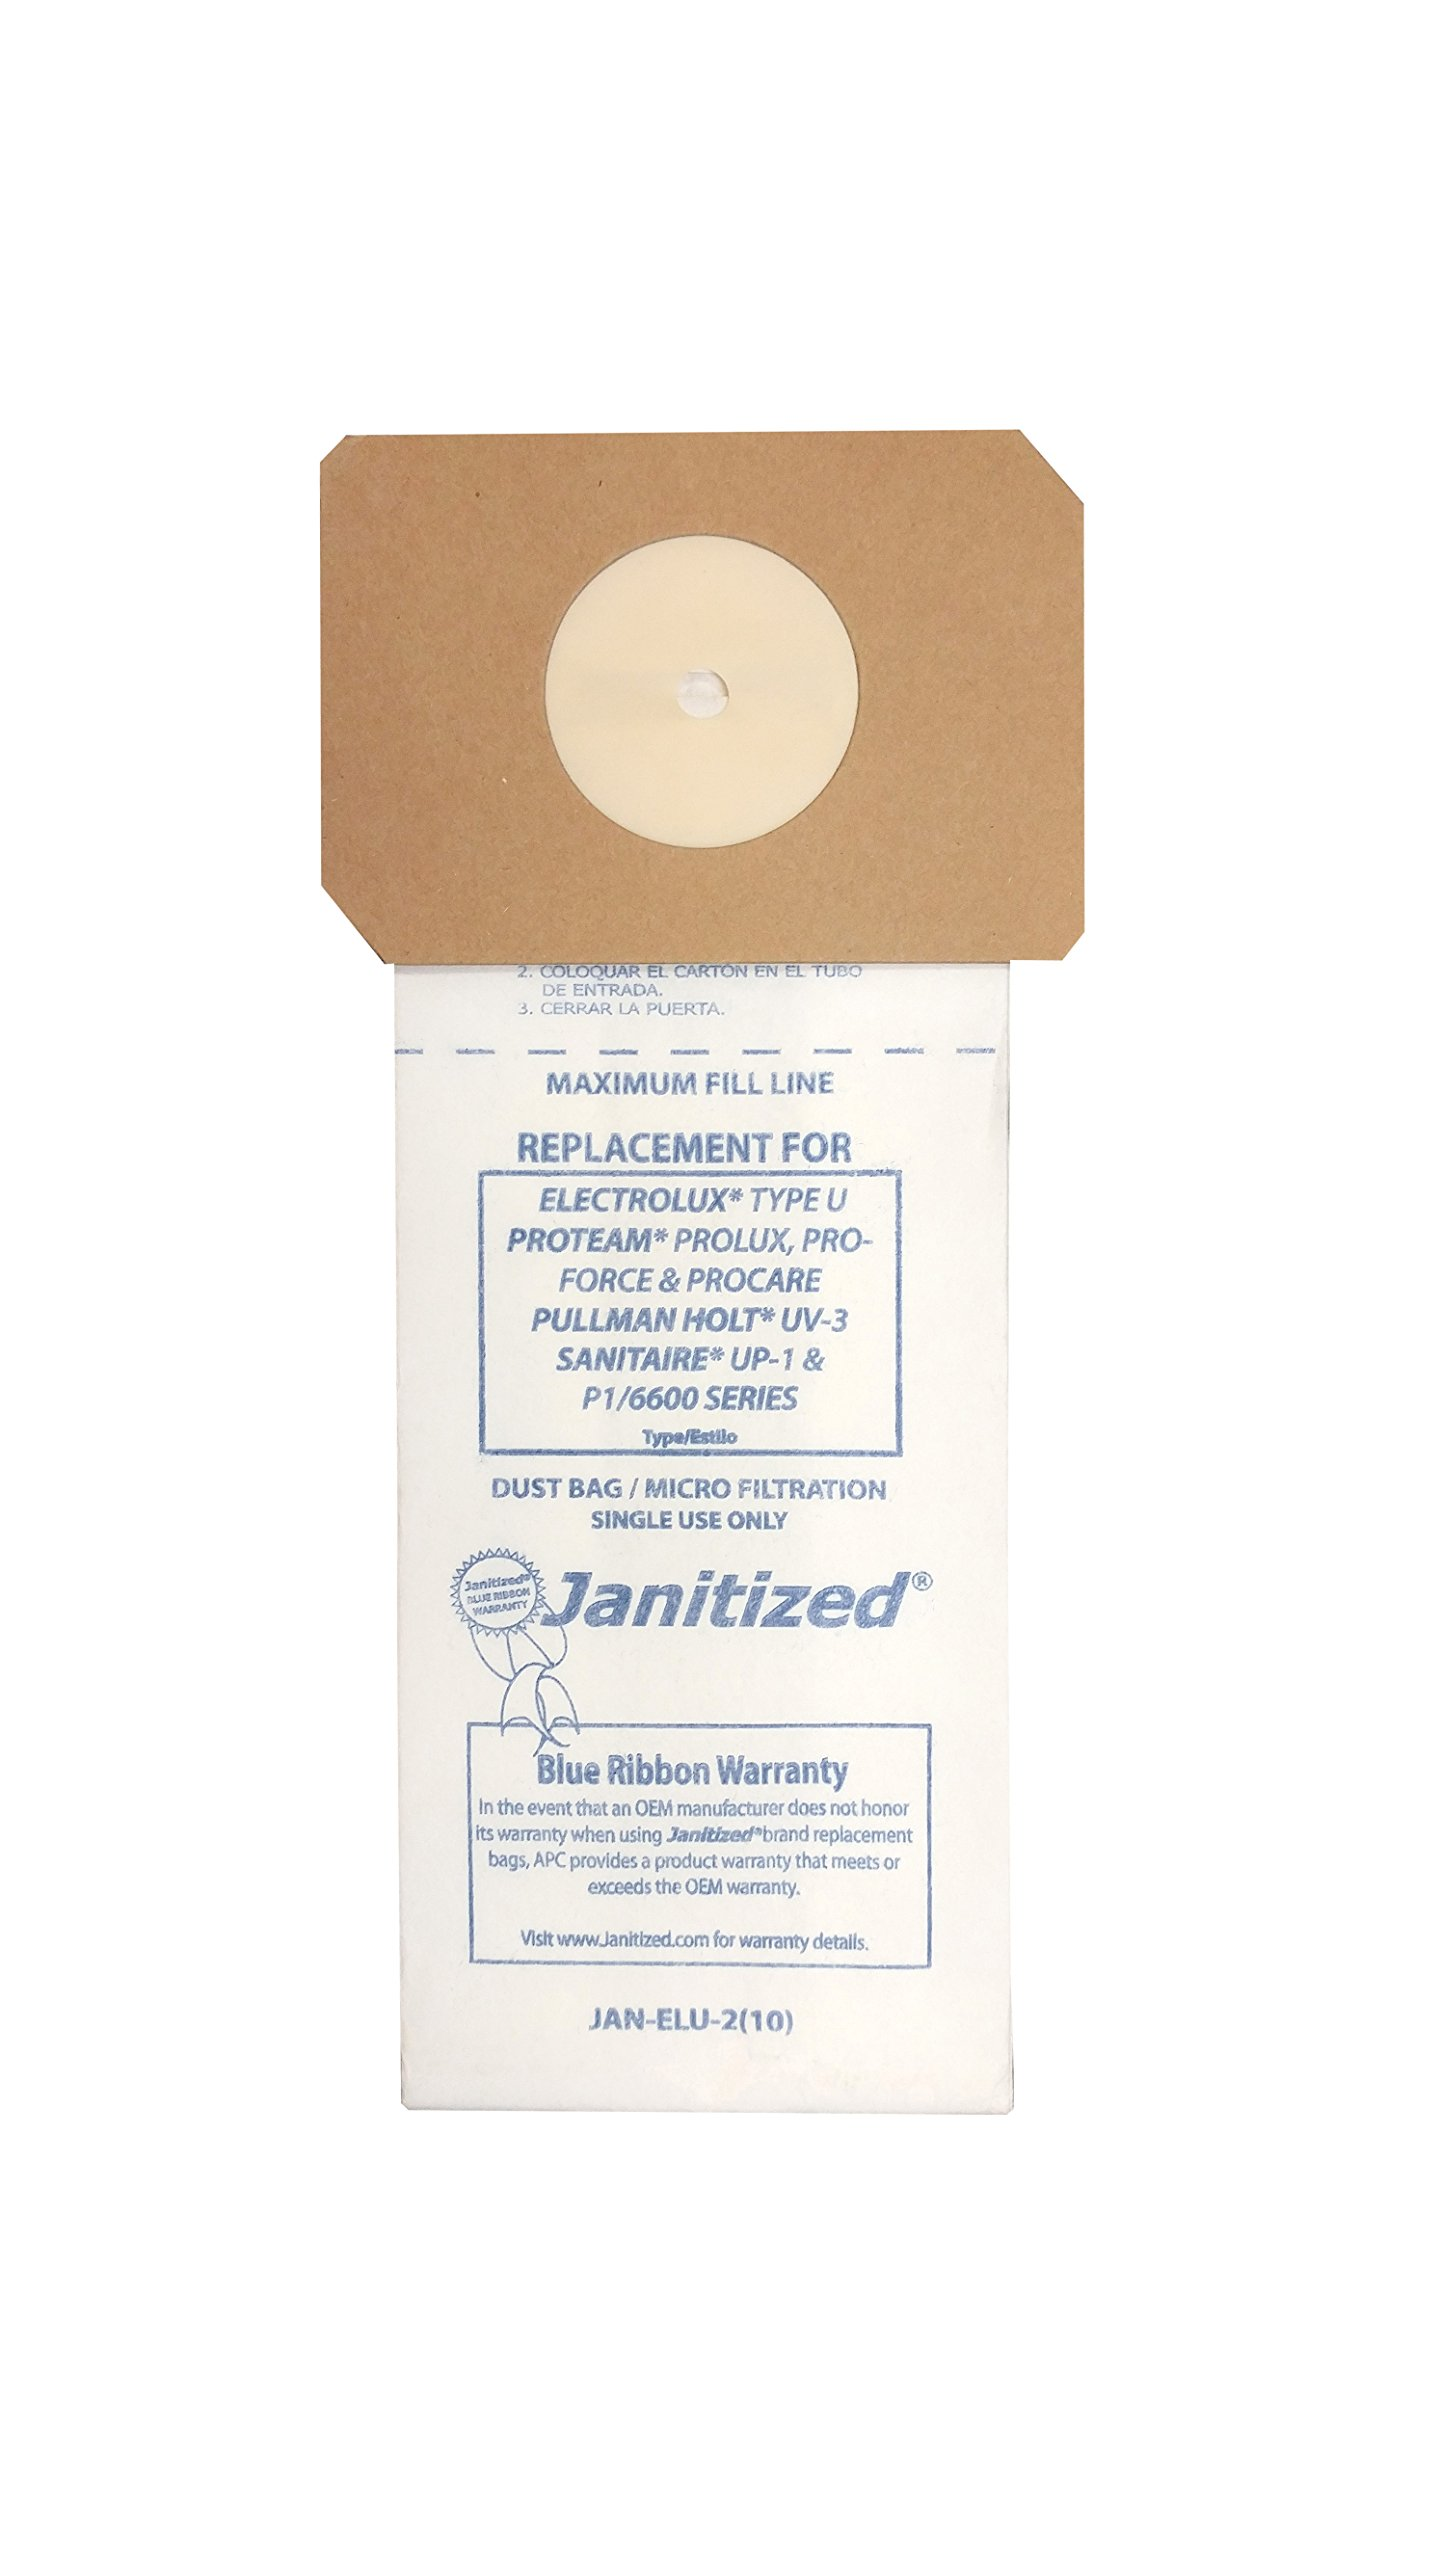 Janitized JAN-ELU-2(10) Premium Replacement Commercial Vacuum Paper Bag, Electrolux U, Sanitaire UP-1, ProTeam ProLux, Proforce, Pullman Holt UV-3, OEM#248, 62100, 103483, 103484, 527042 (Pack of 10)